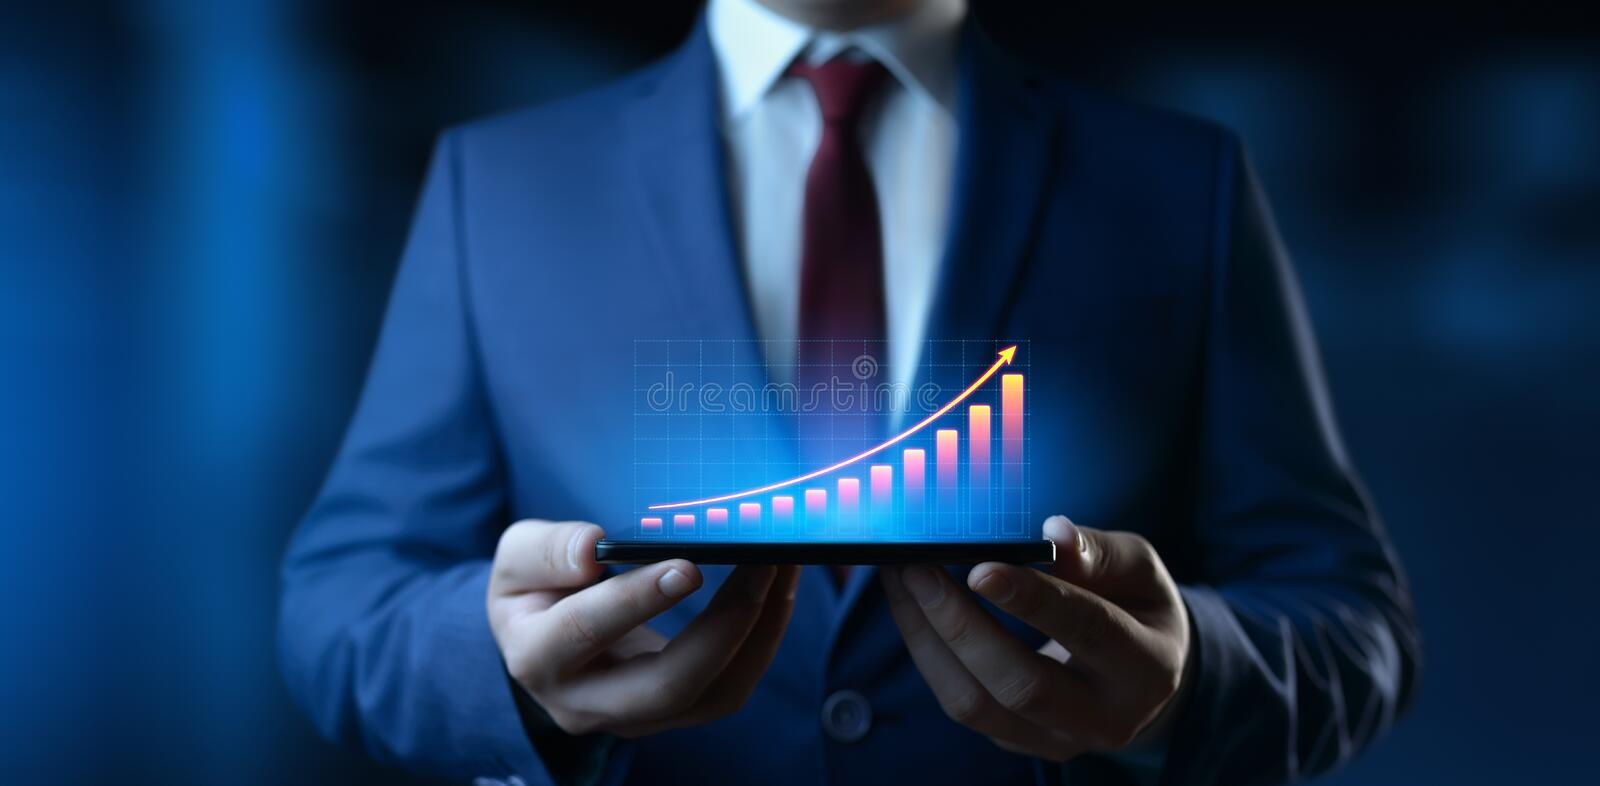 Financial Graph. Stock Market chart. Forex Investment Business Internet Technology concept.  stock photography